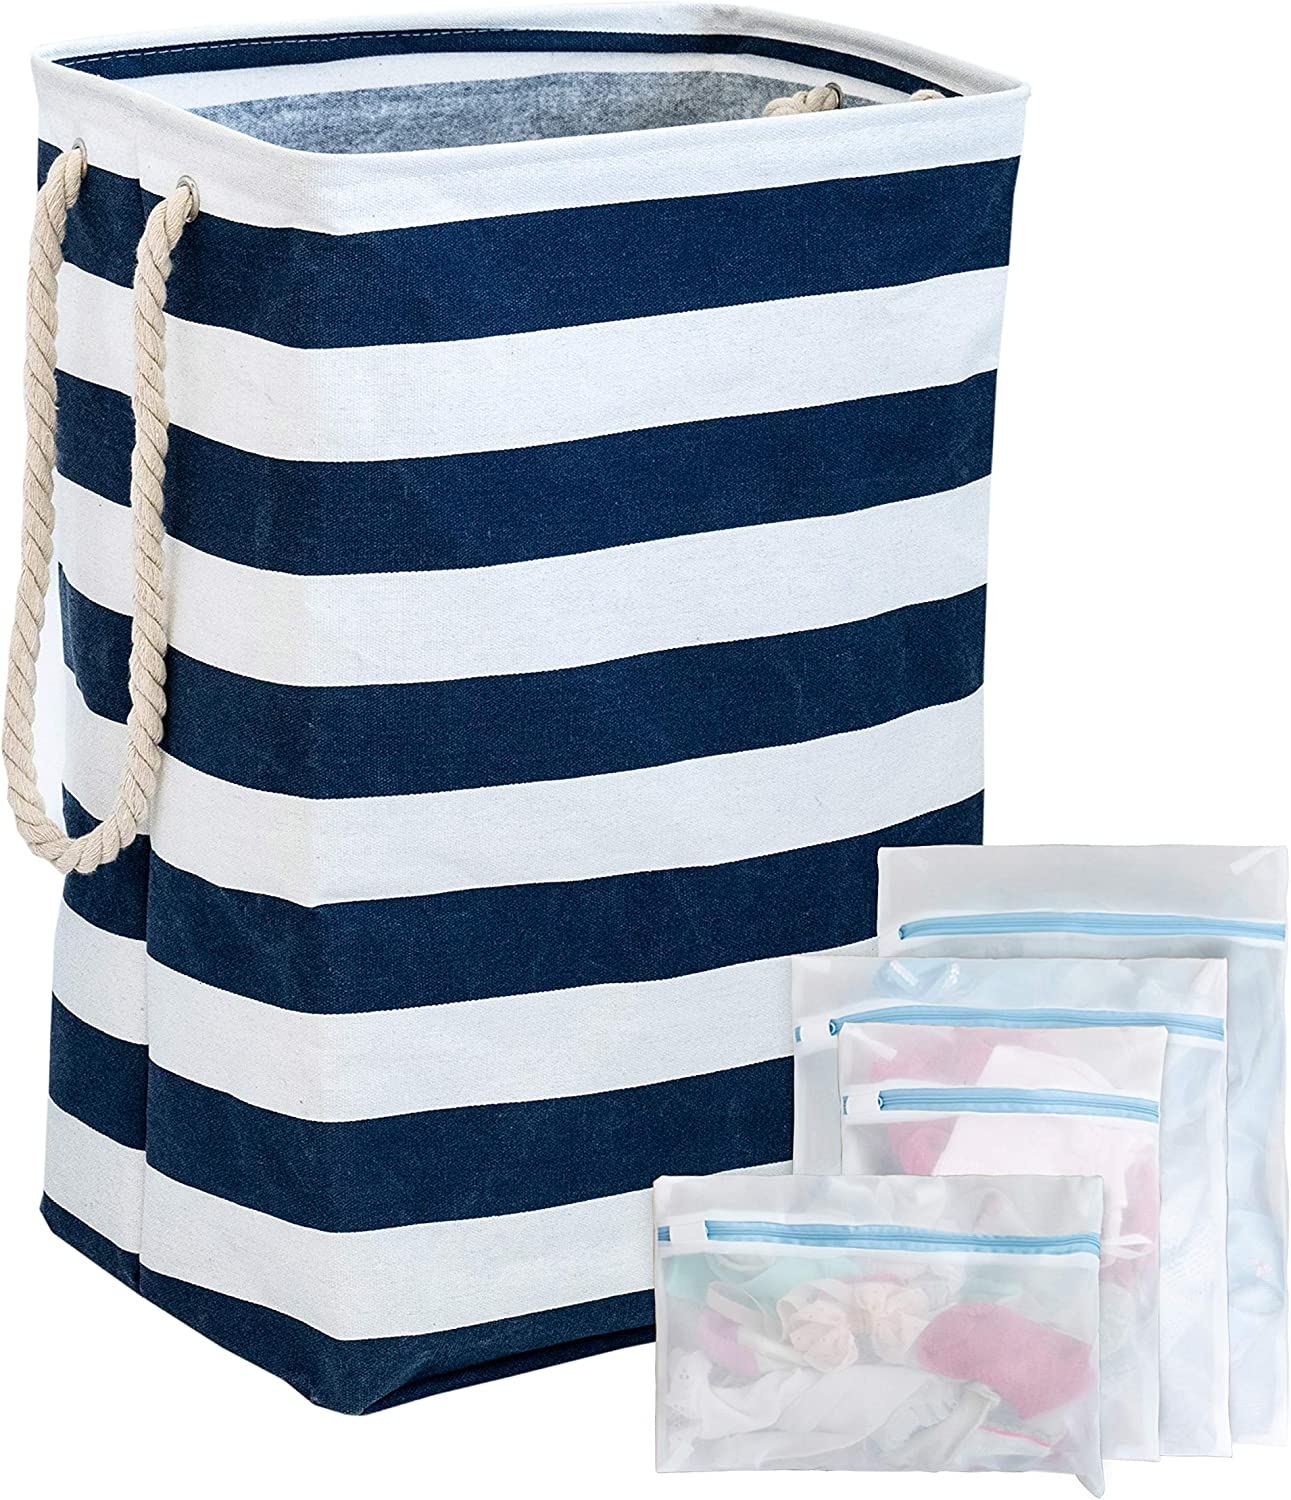 SMIRLY Large Laundry Basket Hamper